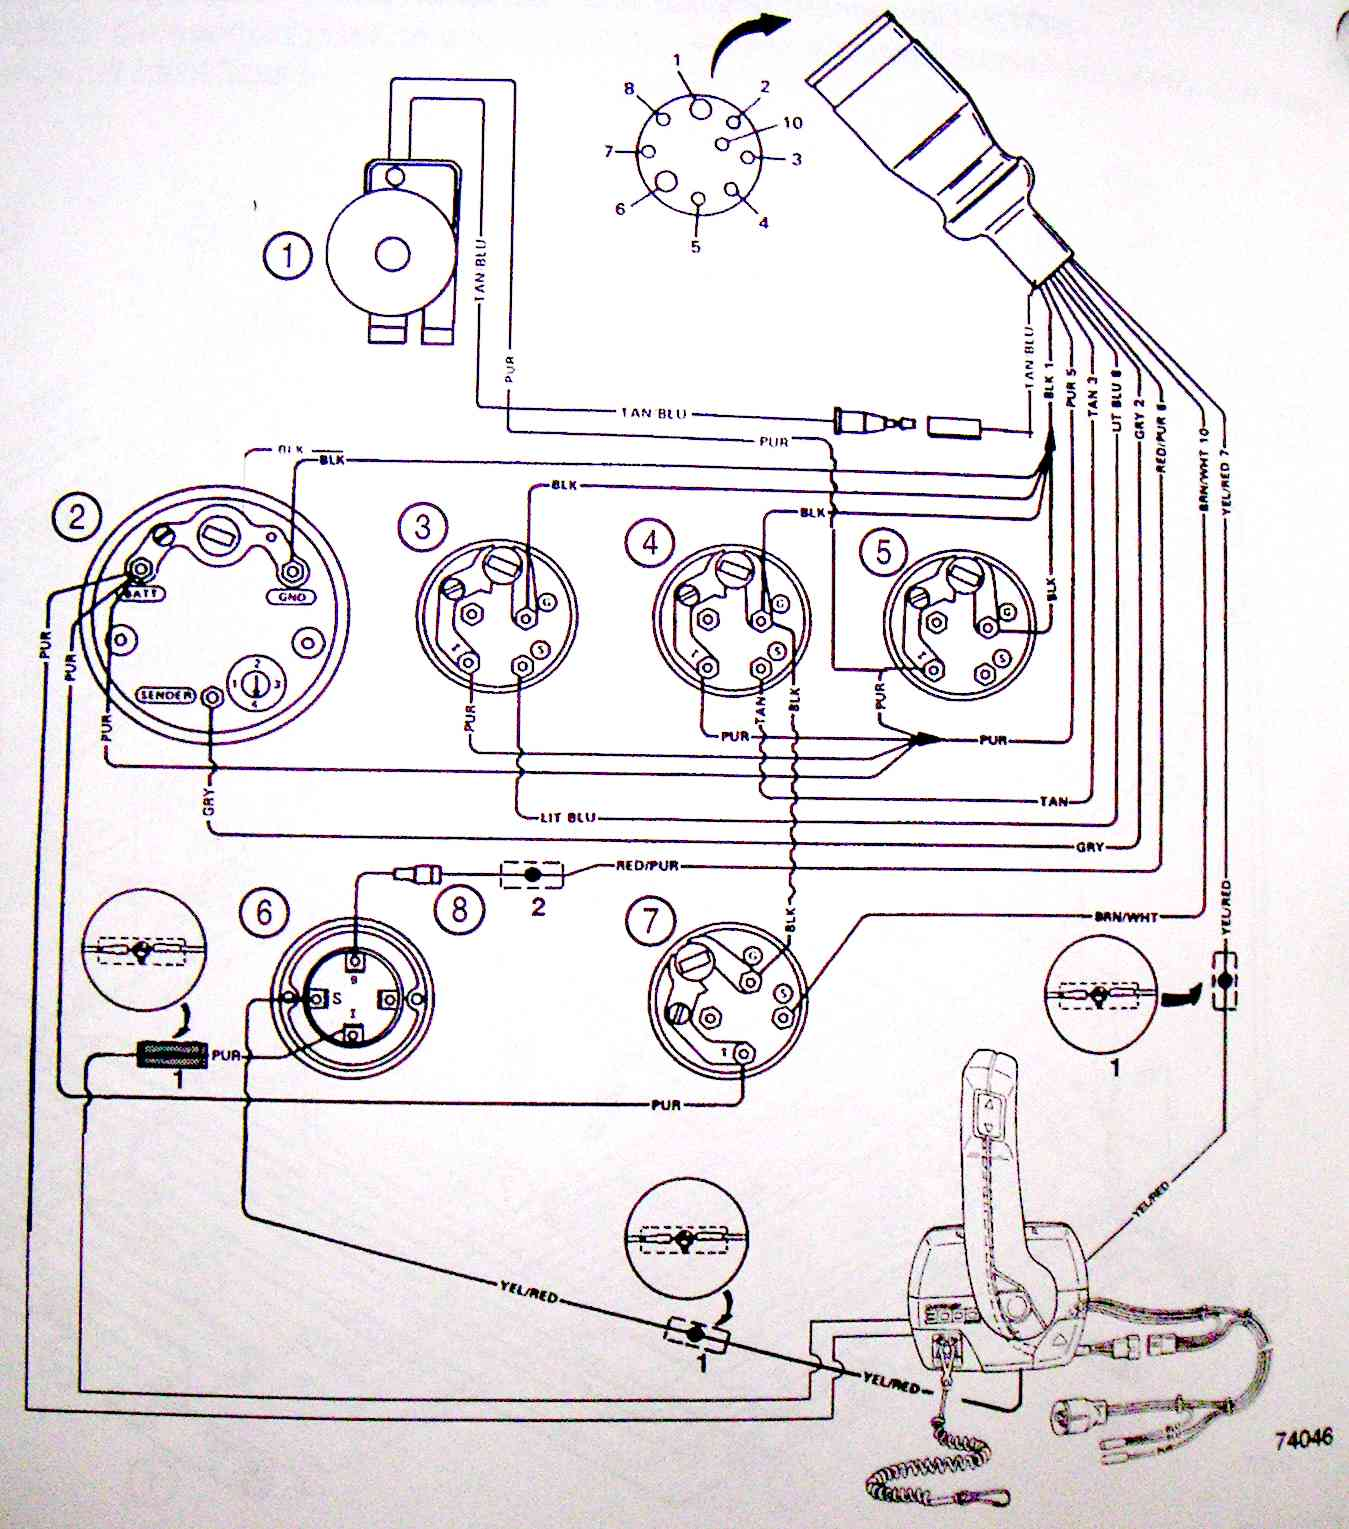 BoatHarness74046 yamaha outboard motor wiring diagrams the wiring diagram  at edmiracle.co